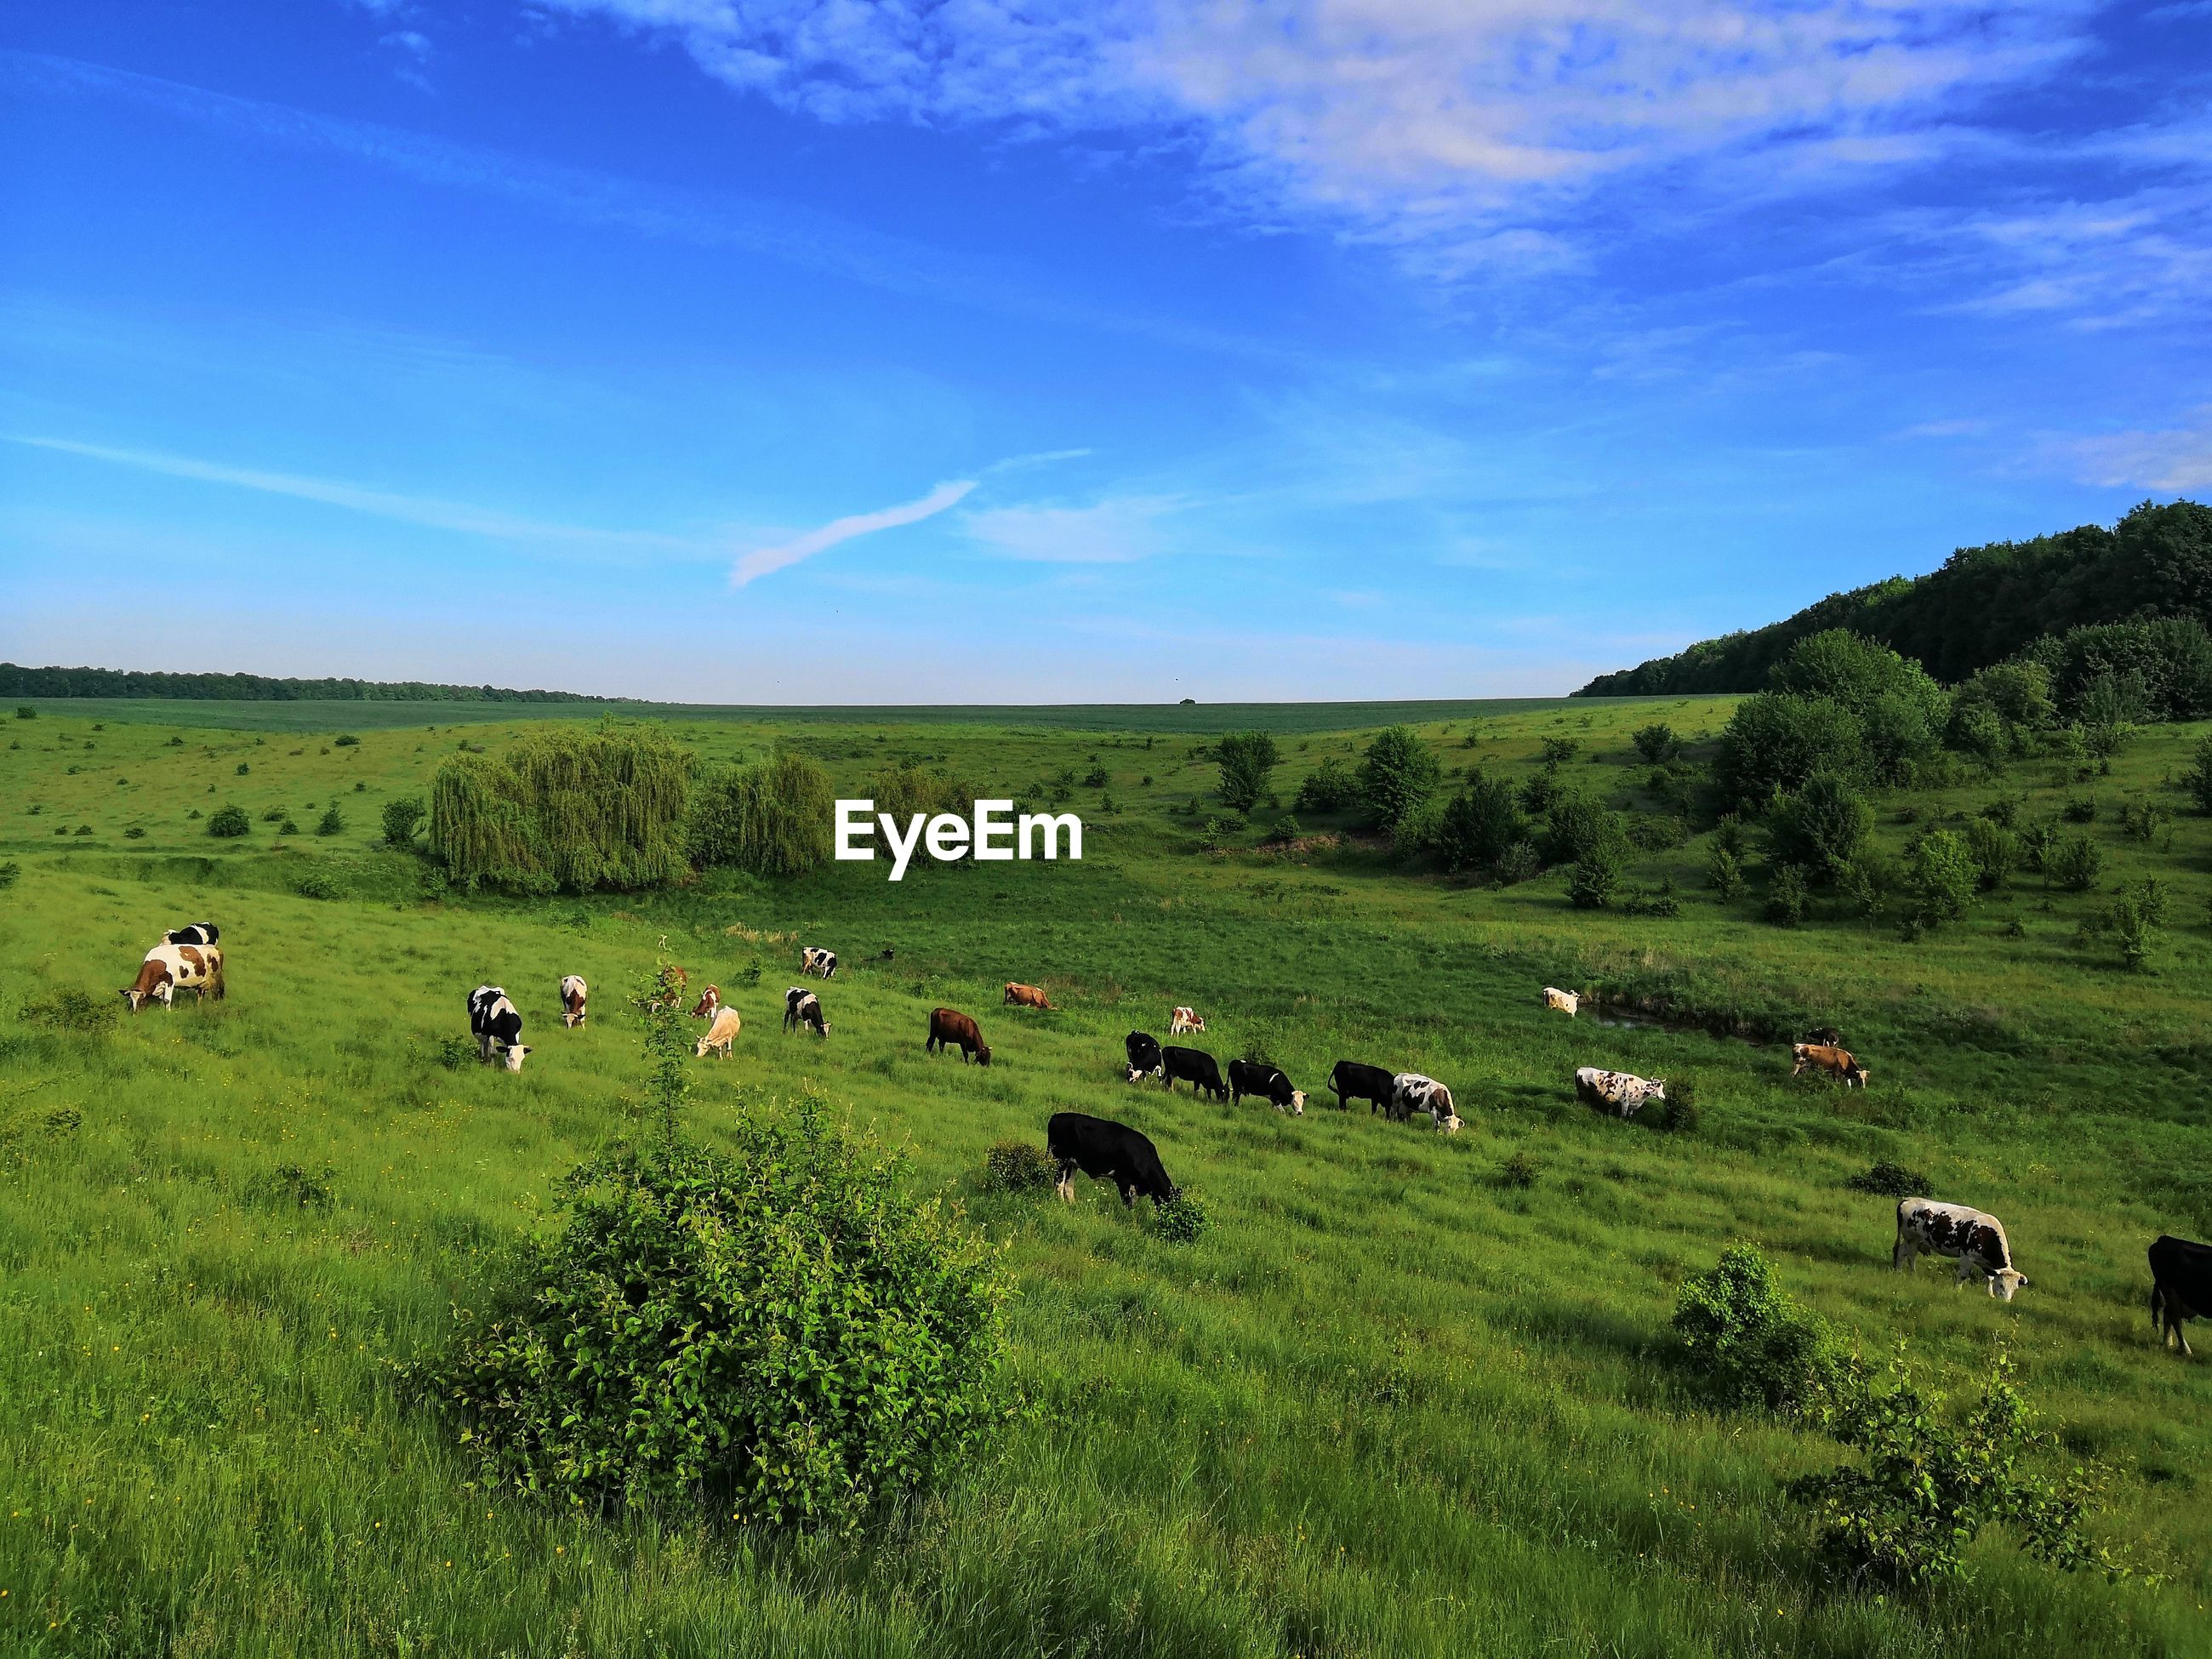 Flock of cows on grassy field against sky